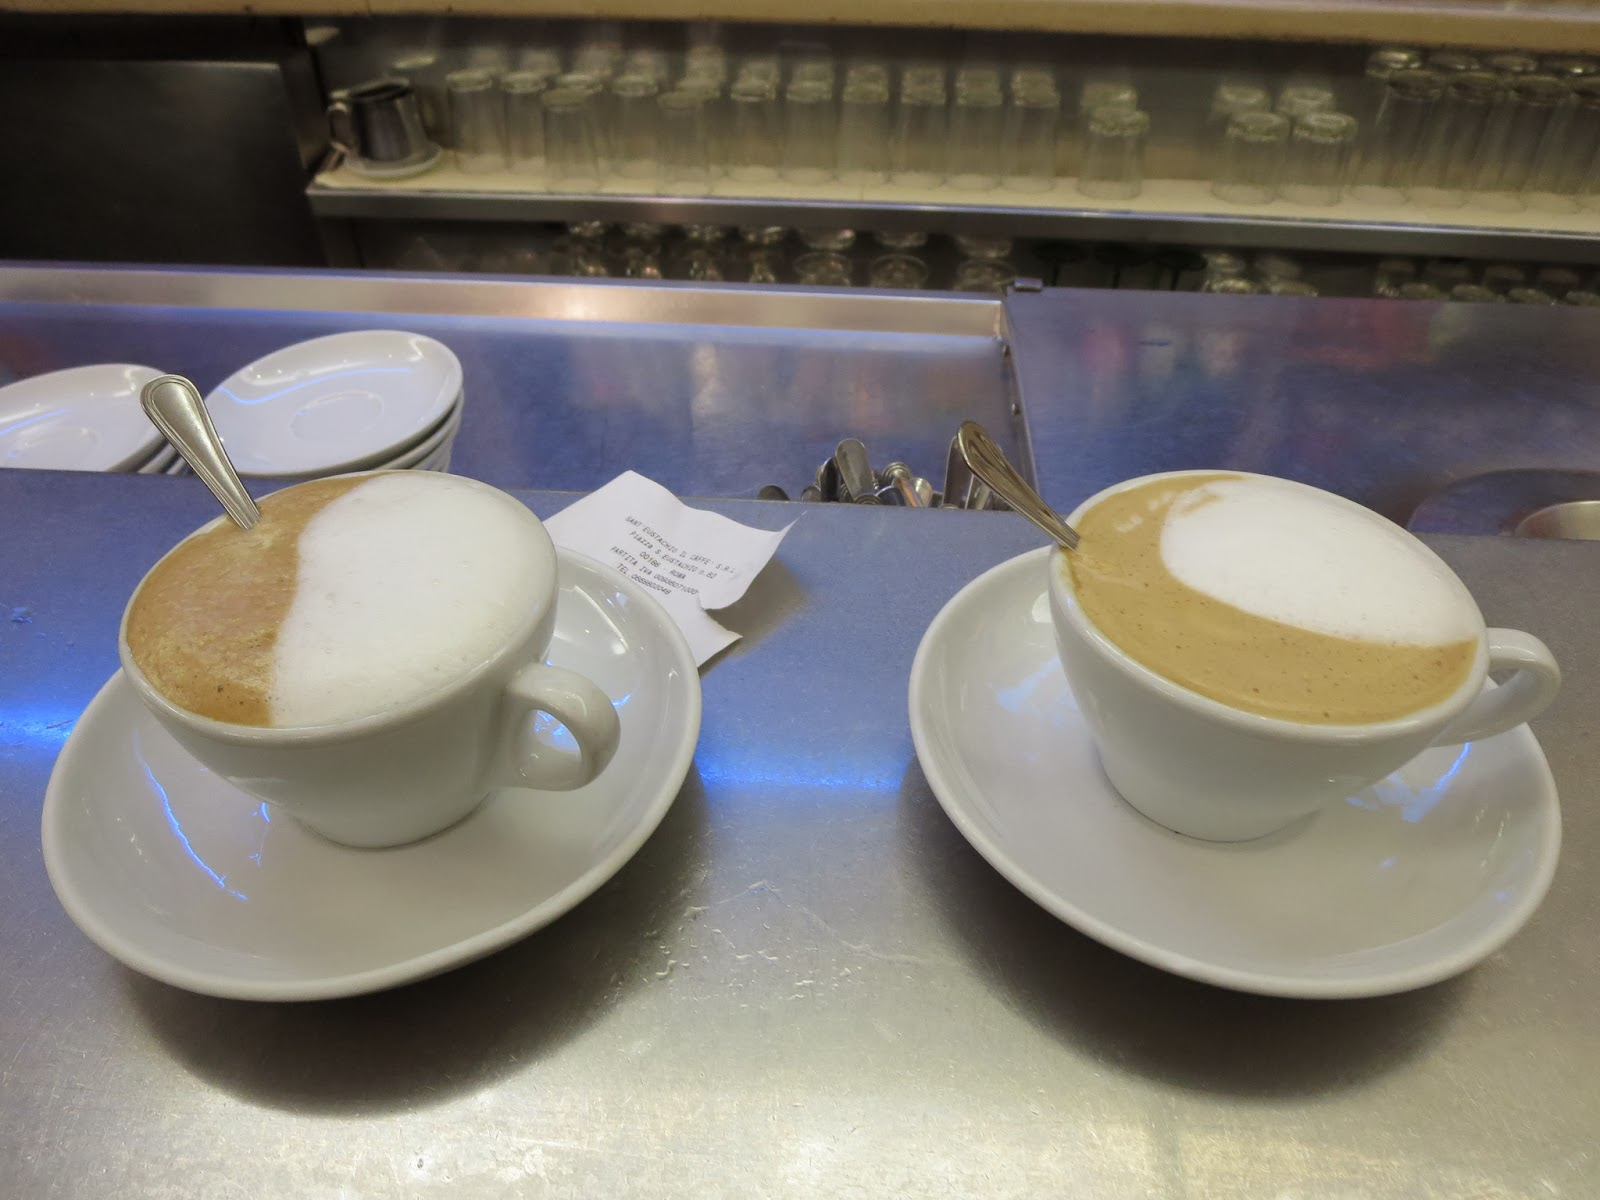 2 coffees at Sant'Eustachio Il Caffè in Rome, Italy